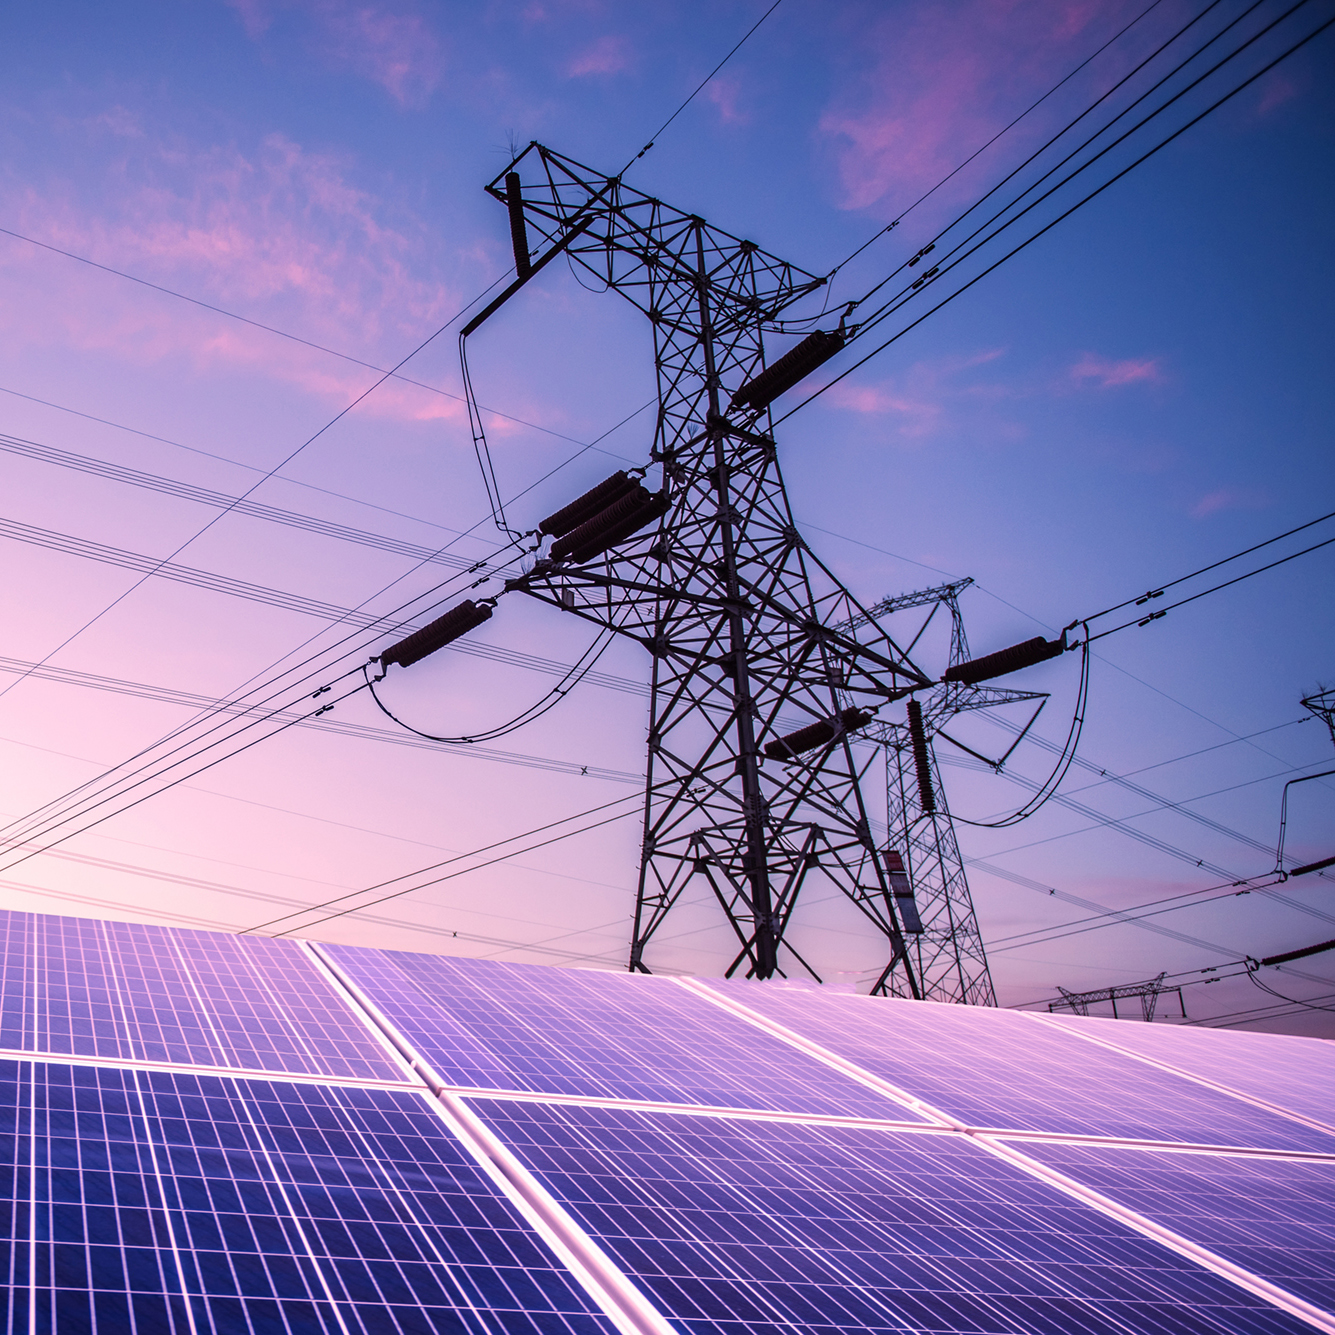 solar panels and electricity pylons